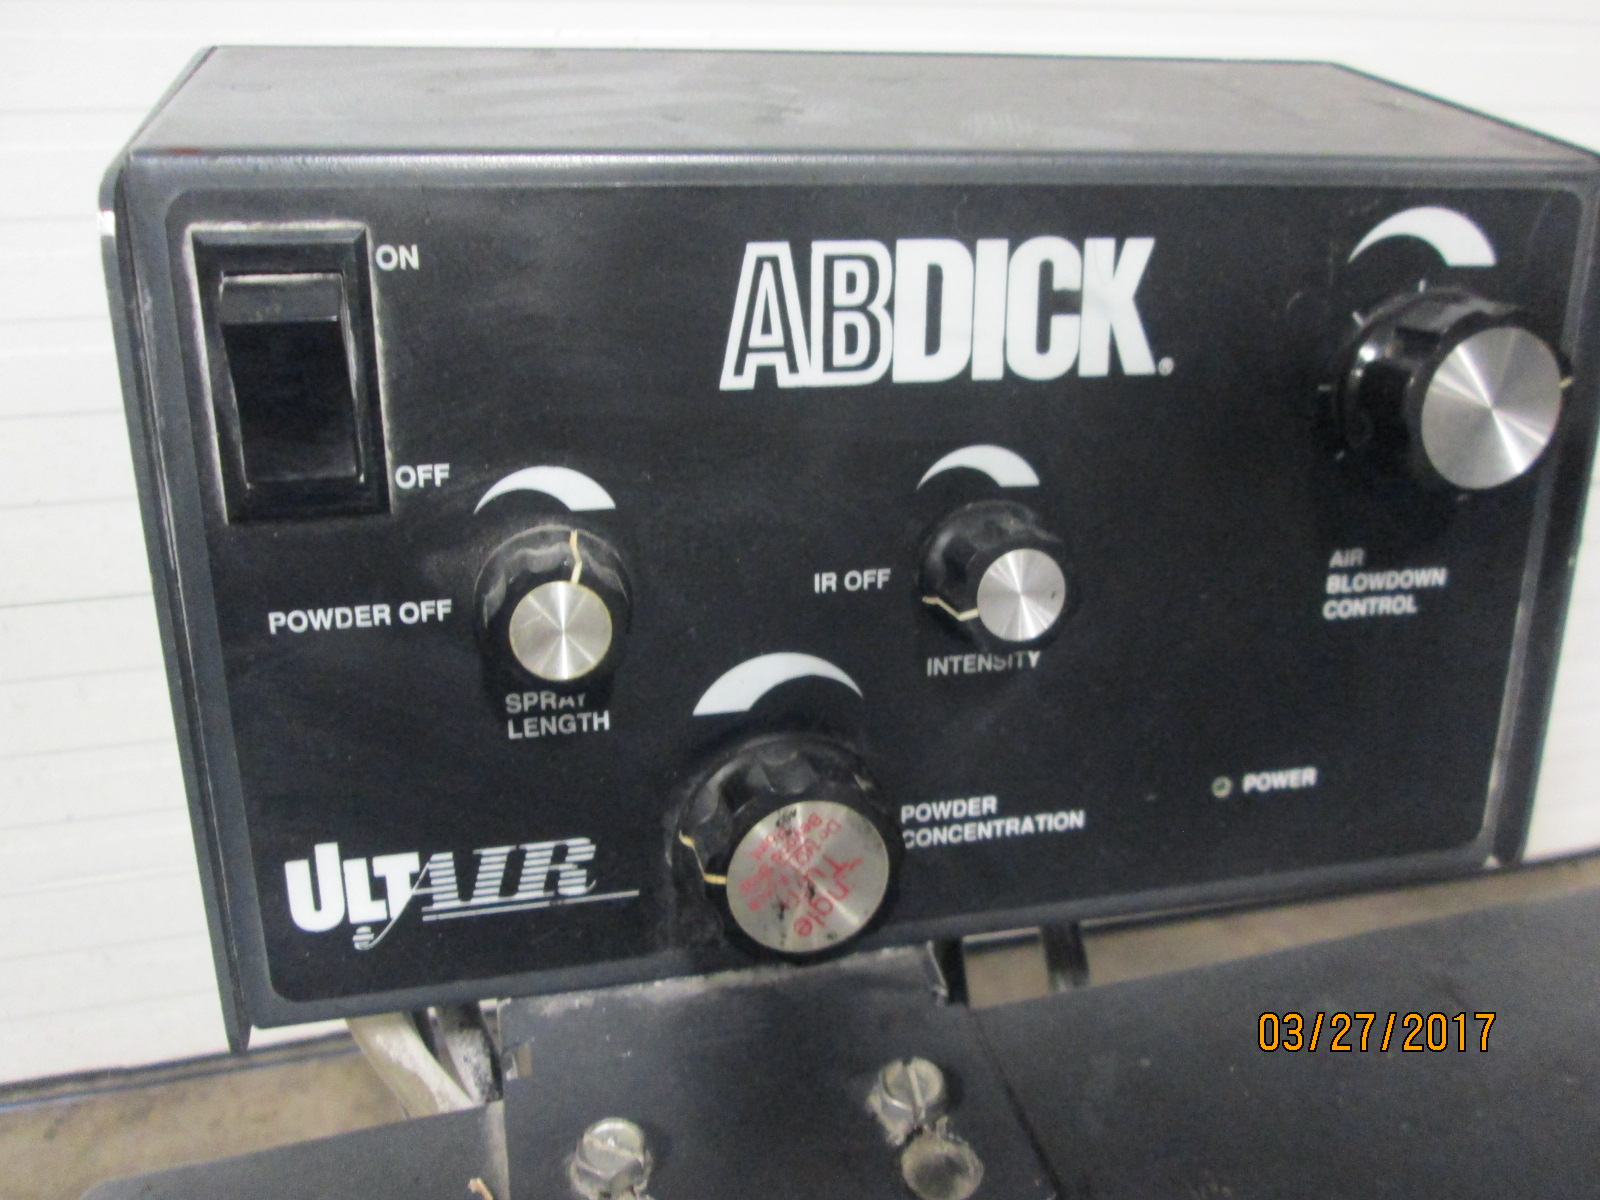 A B DICK 9970CD, APPROX YEAR: 2001 SN # 70551 14